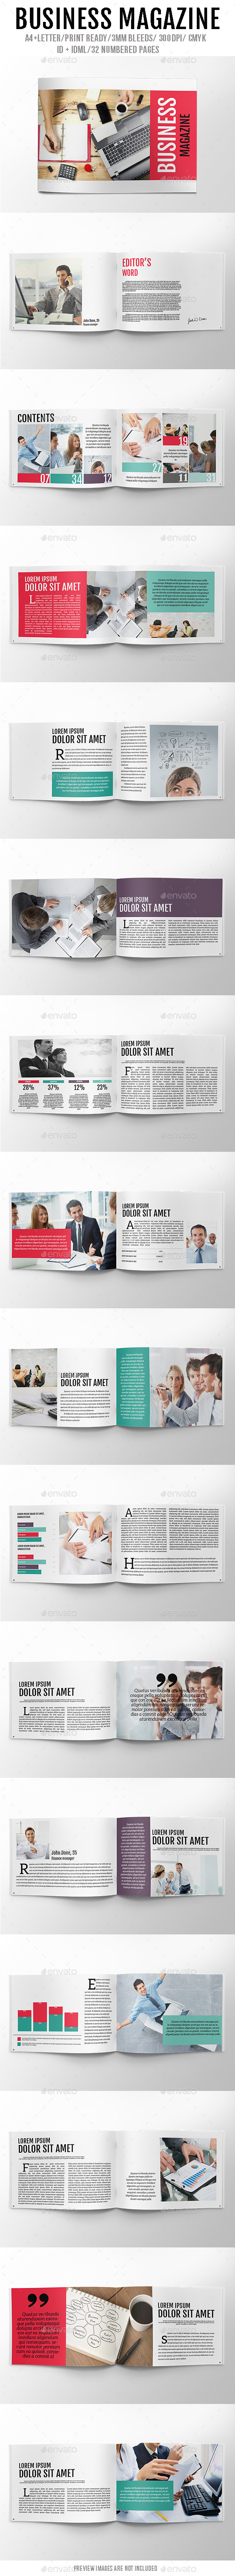 Business Magazine - Magazines Print Templates